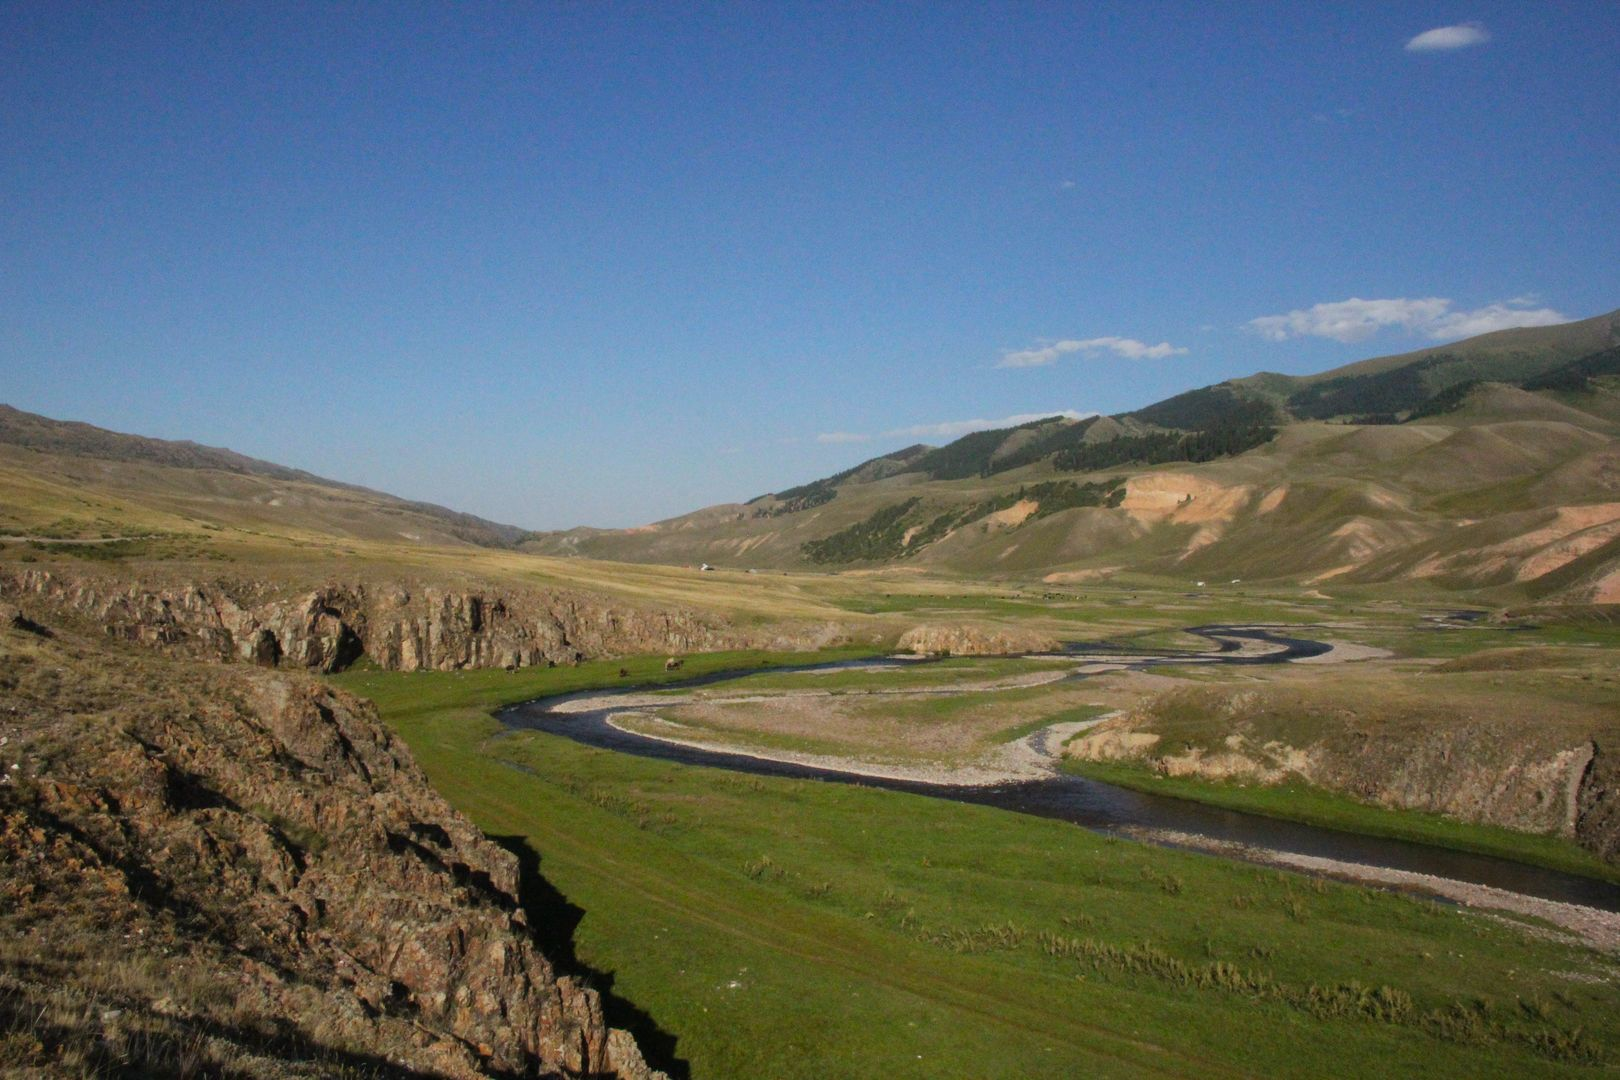 Kyrgyzstan - beauitful mountains scenery